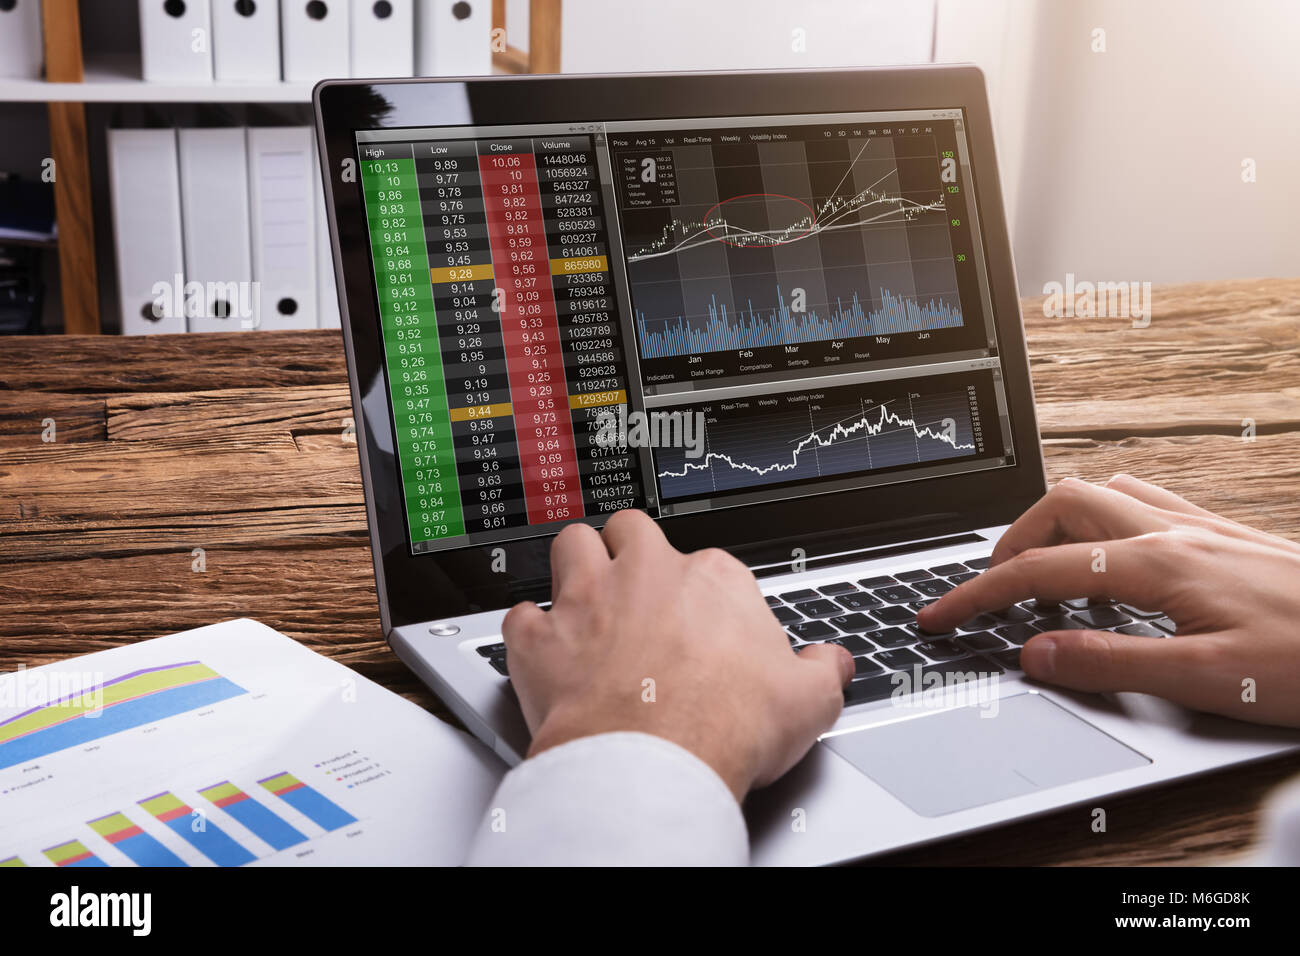 Close-up Of A Stock Market Broker's Hand Looking At Graphs On Laptop - Stock Image